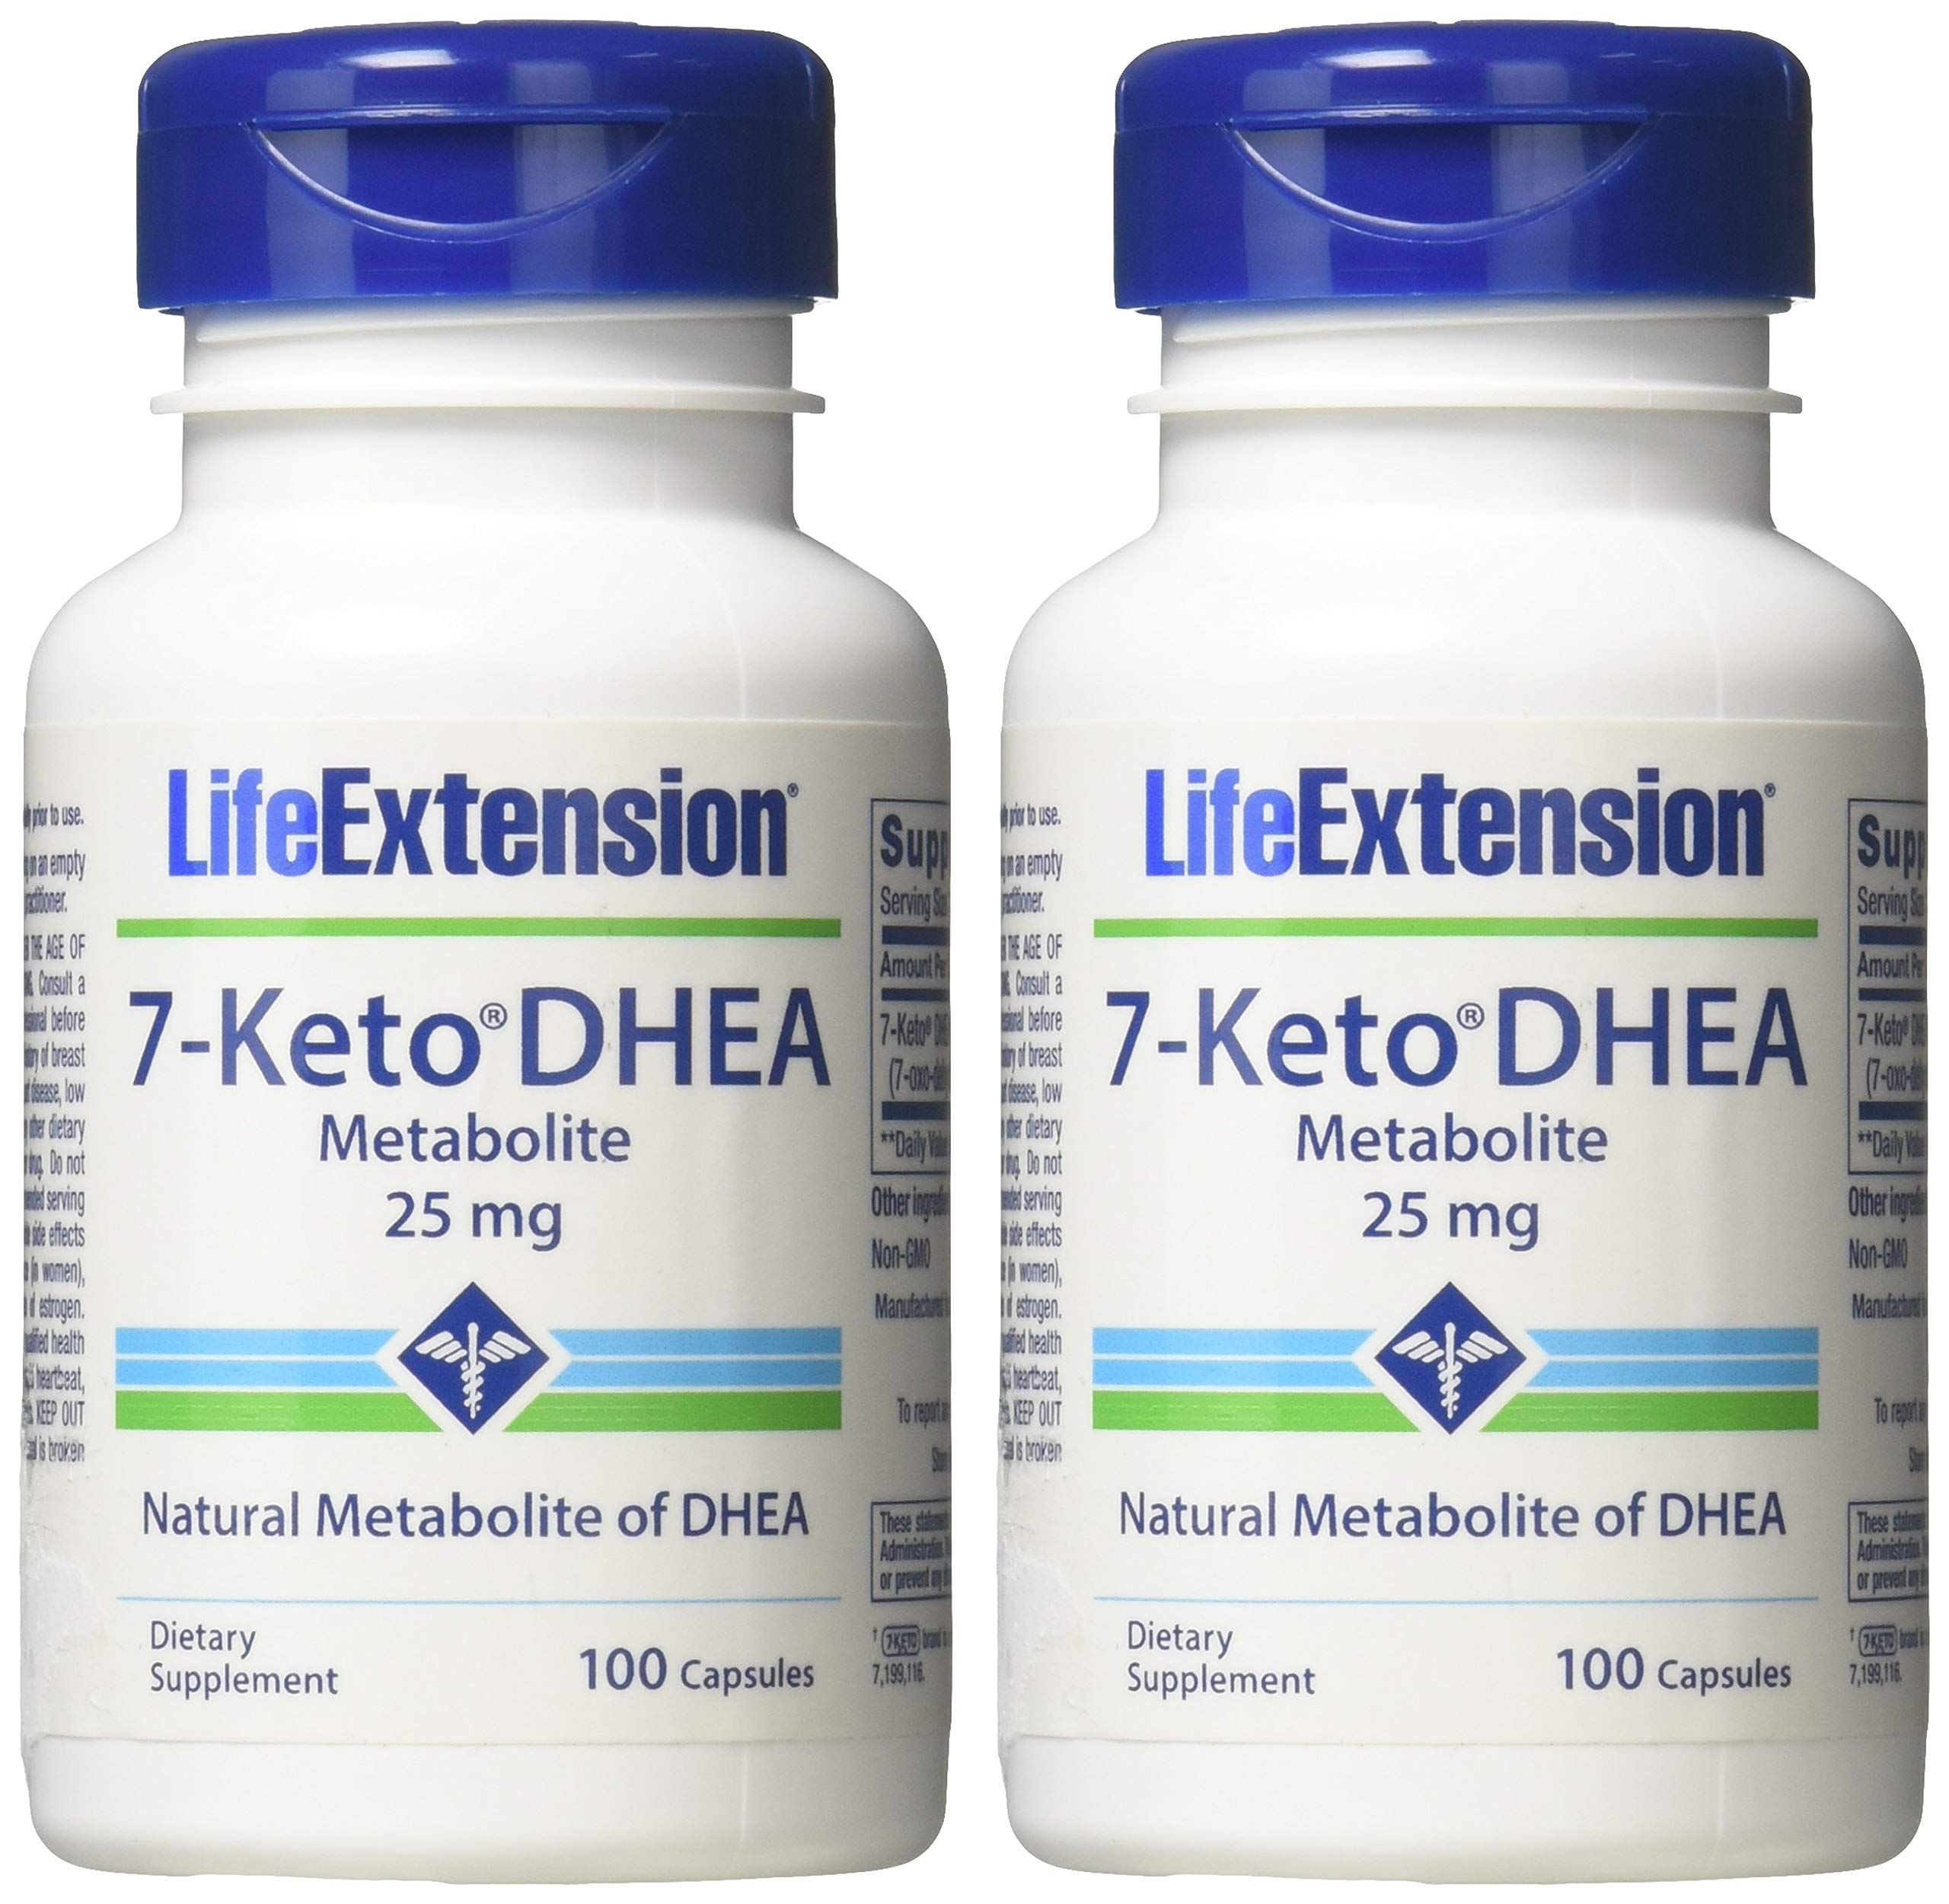 Life Extension - 7-Keto DHEA Metabolite 25 mg 100 caps (Pack of 2) by Life Extension (Image #2)